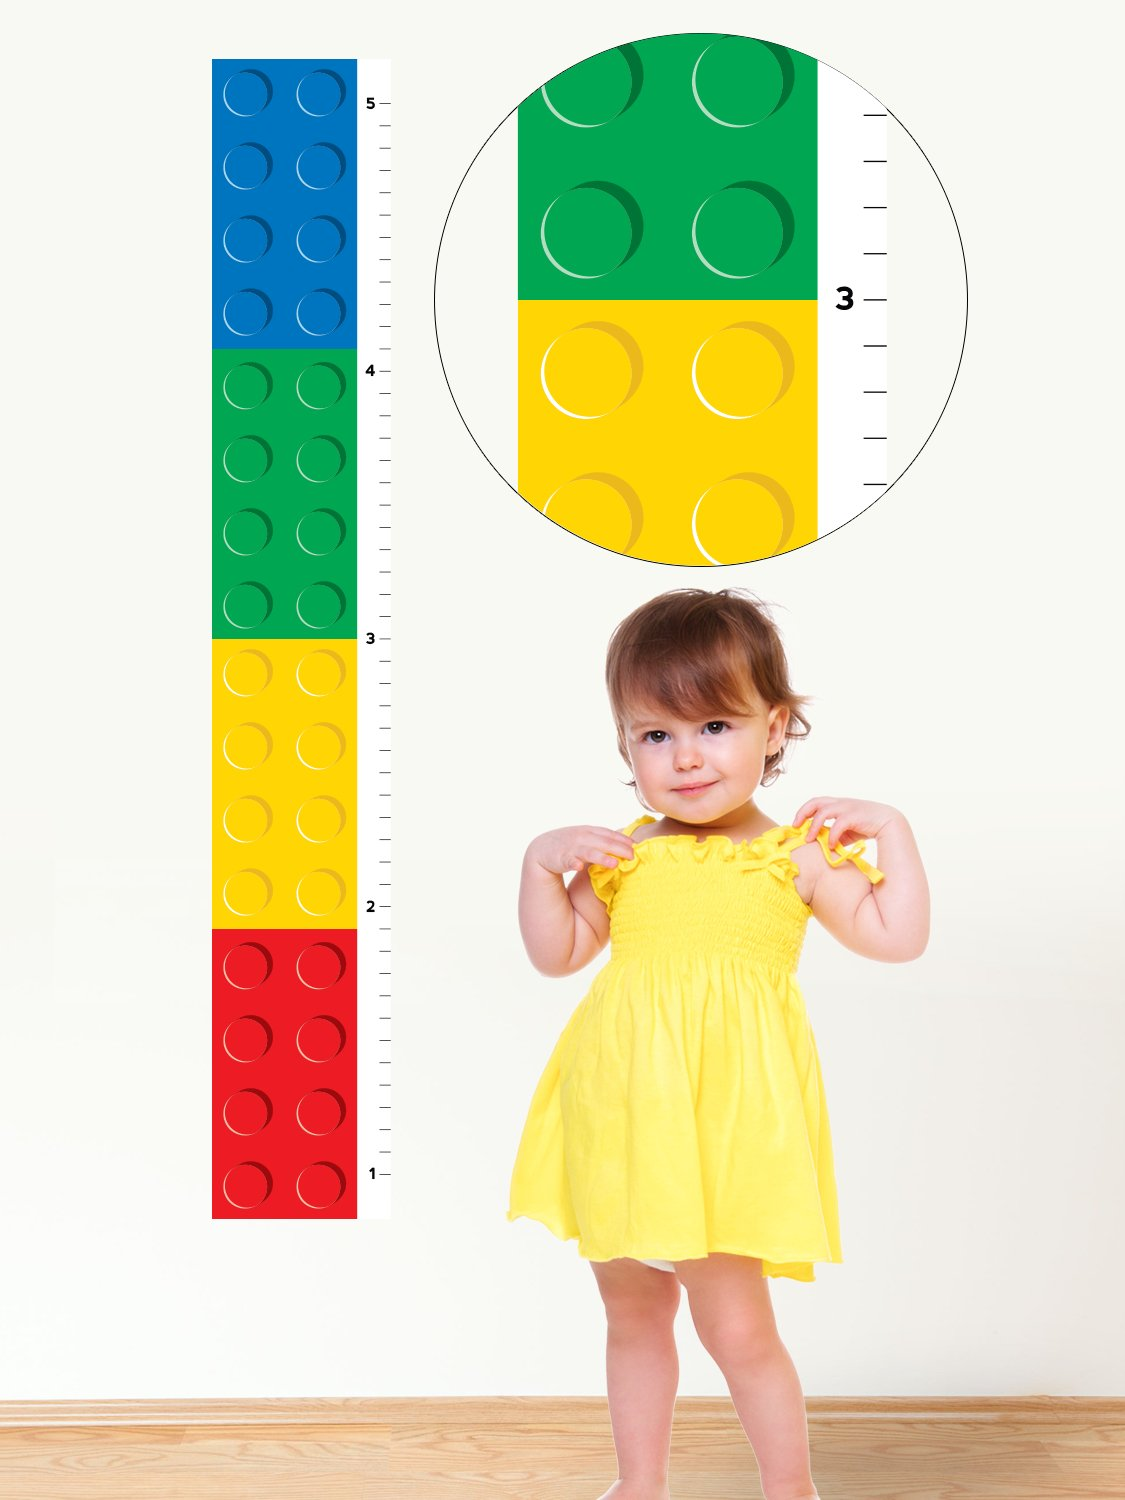 Building Block Growth Chart Fabric Wall Decal - Growth Chart Wall Art - Non-Toxic, Removable, Reusable, Respositionable